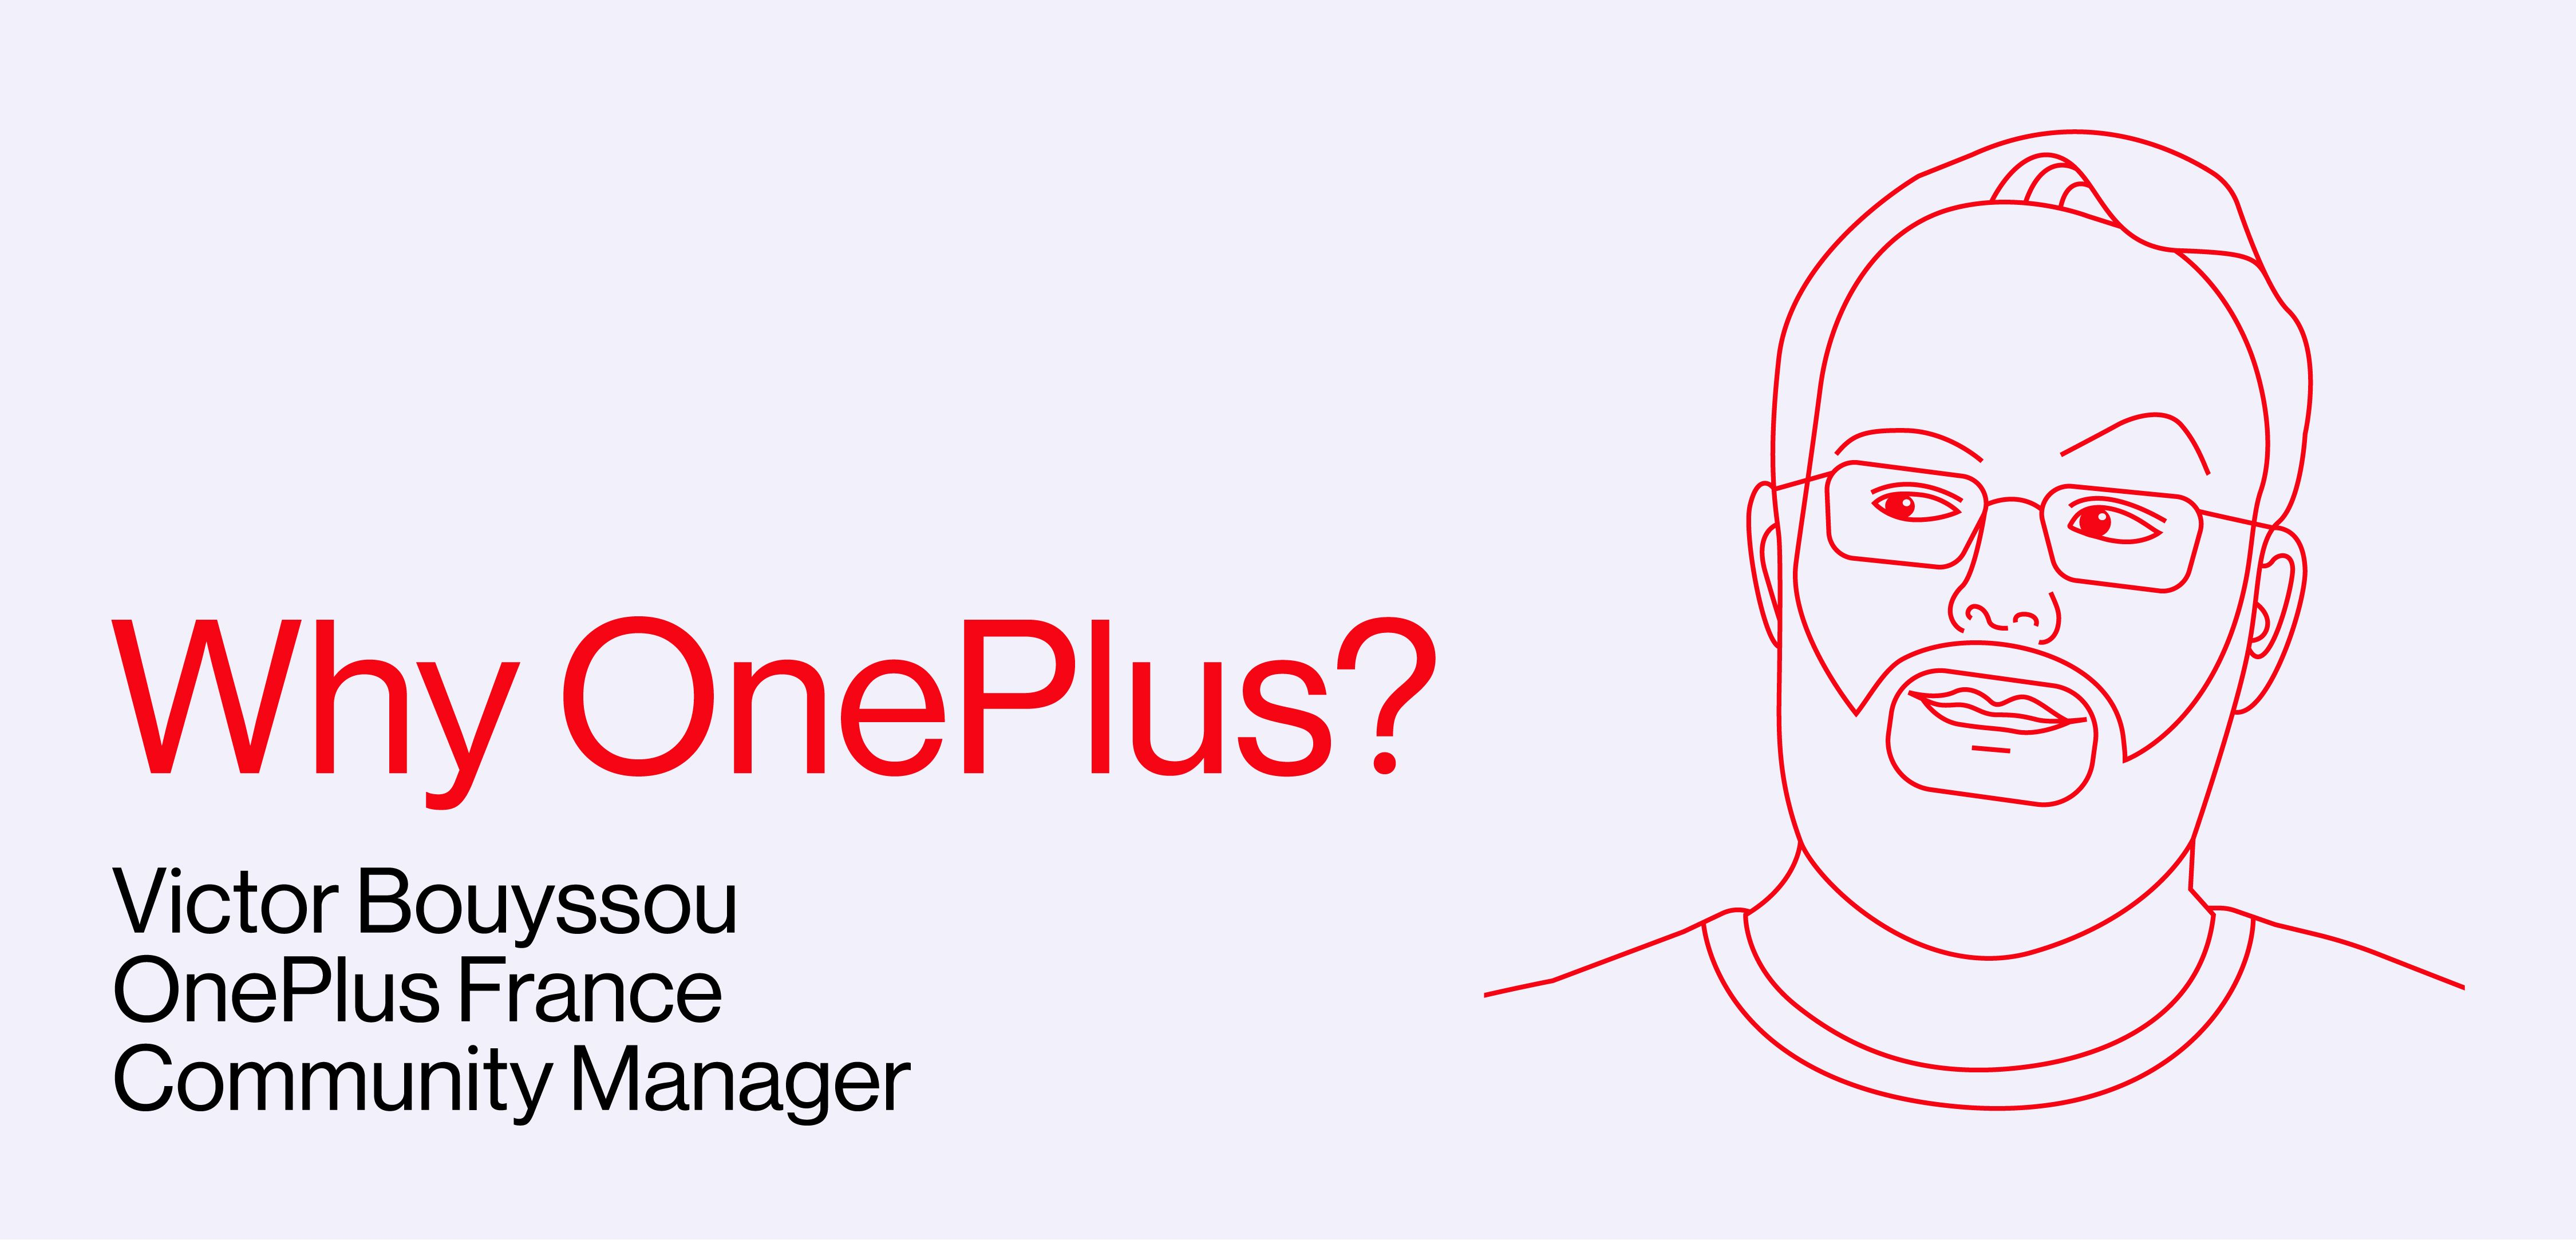 OnePlus_Why OnePlus-2nd edition_1080x520.jpg